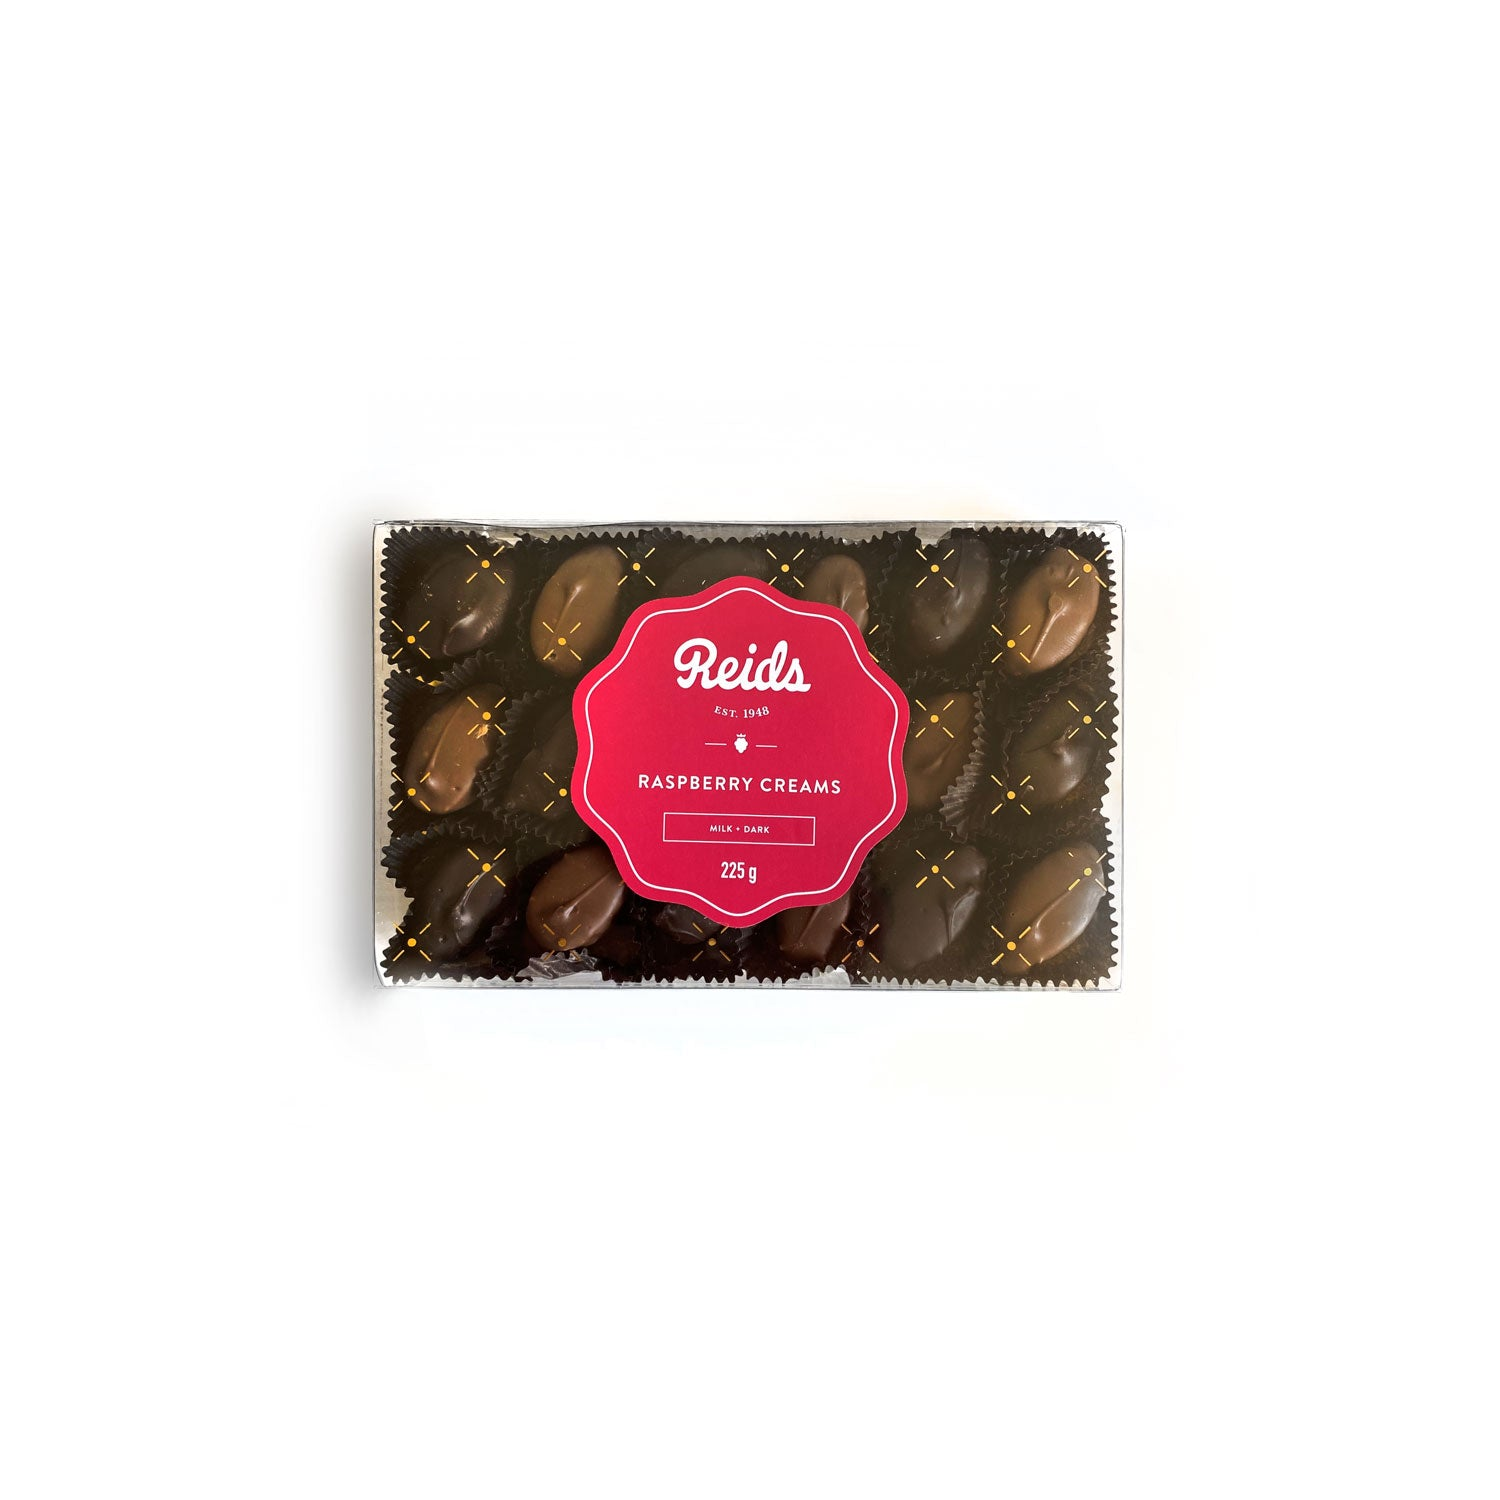 Raspberry cream filling coated in our milk and dark chocolate.